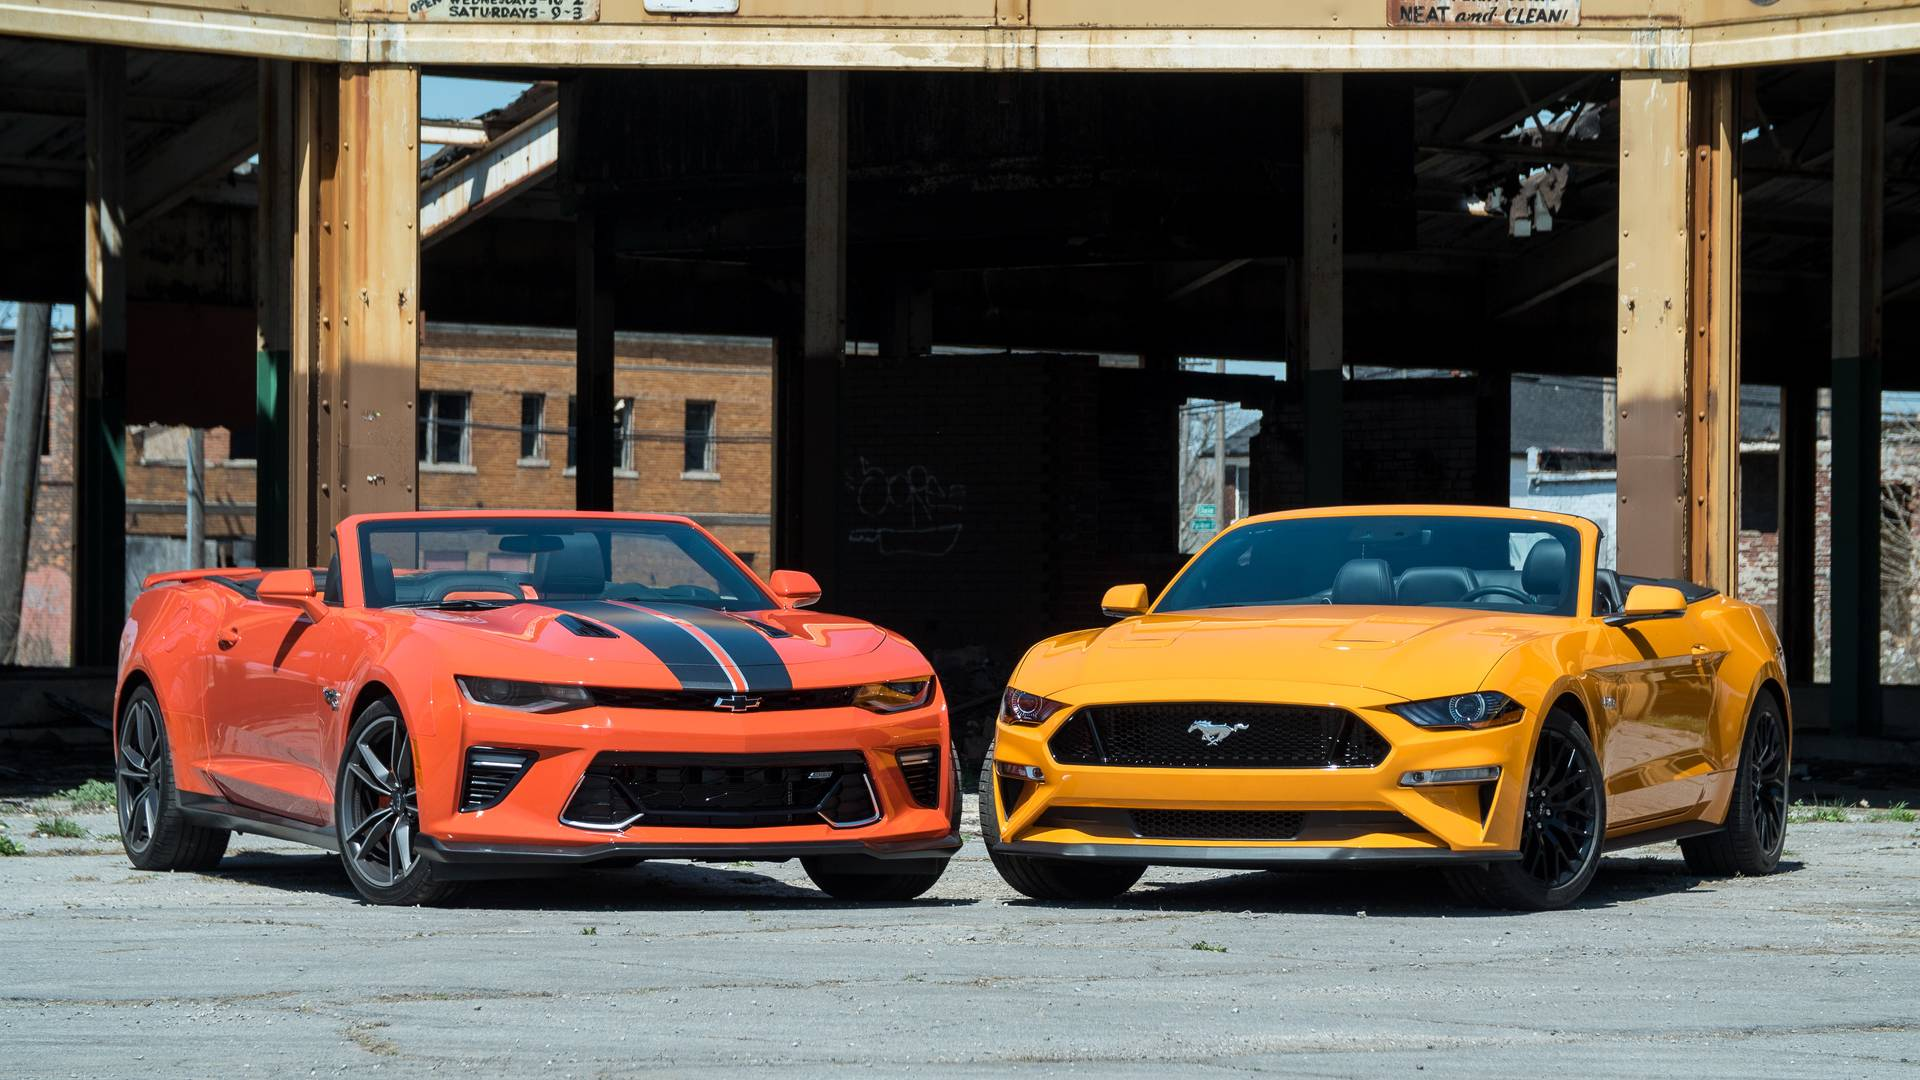 Mustang Vs Camaro >> Chevy Camaro Ss Vs Ford Mustang Gt Top Down Tussle